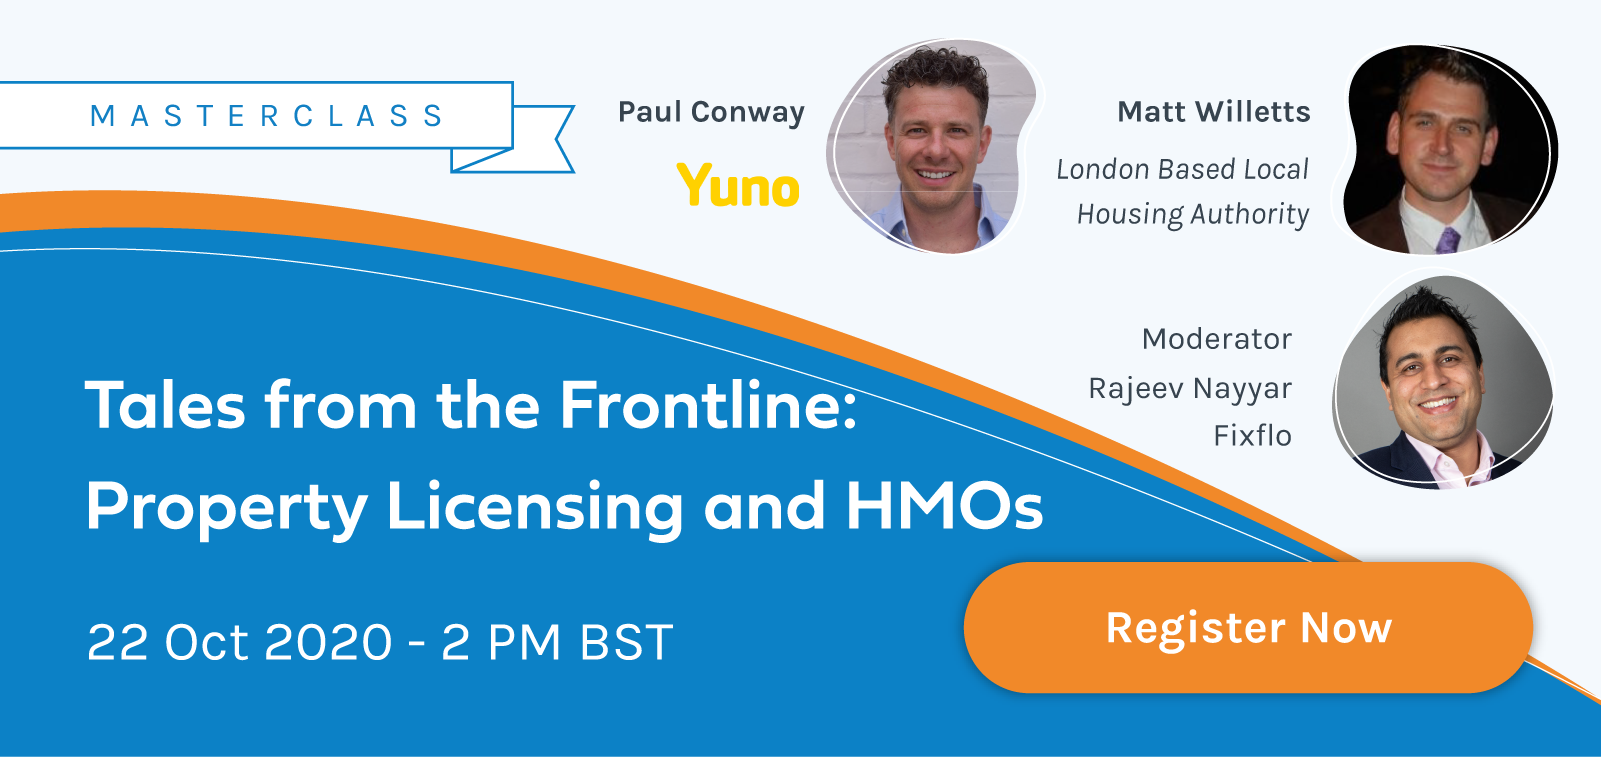 Fixflo Masterclass - Tales from the Frontline: Property Licensing and HMOs